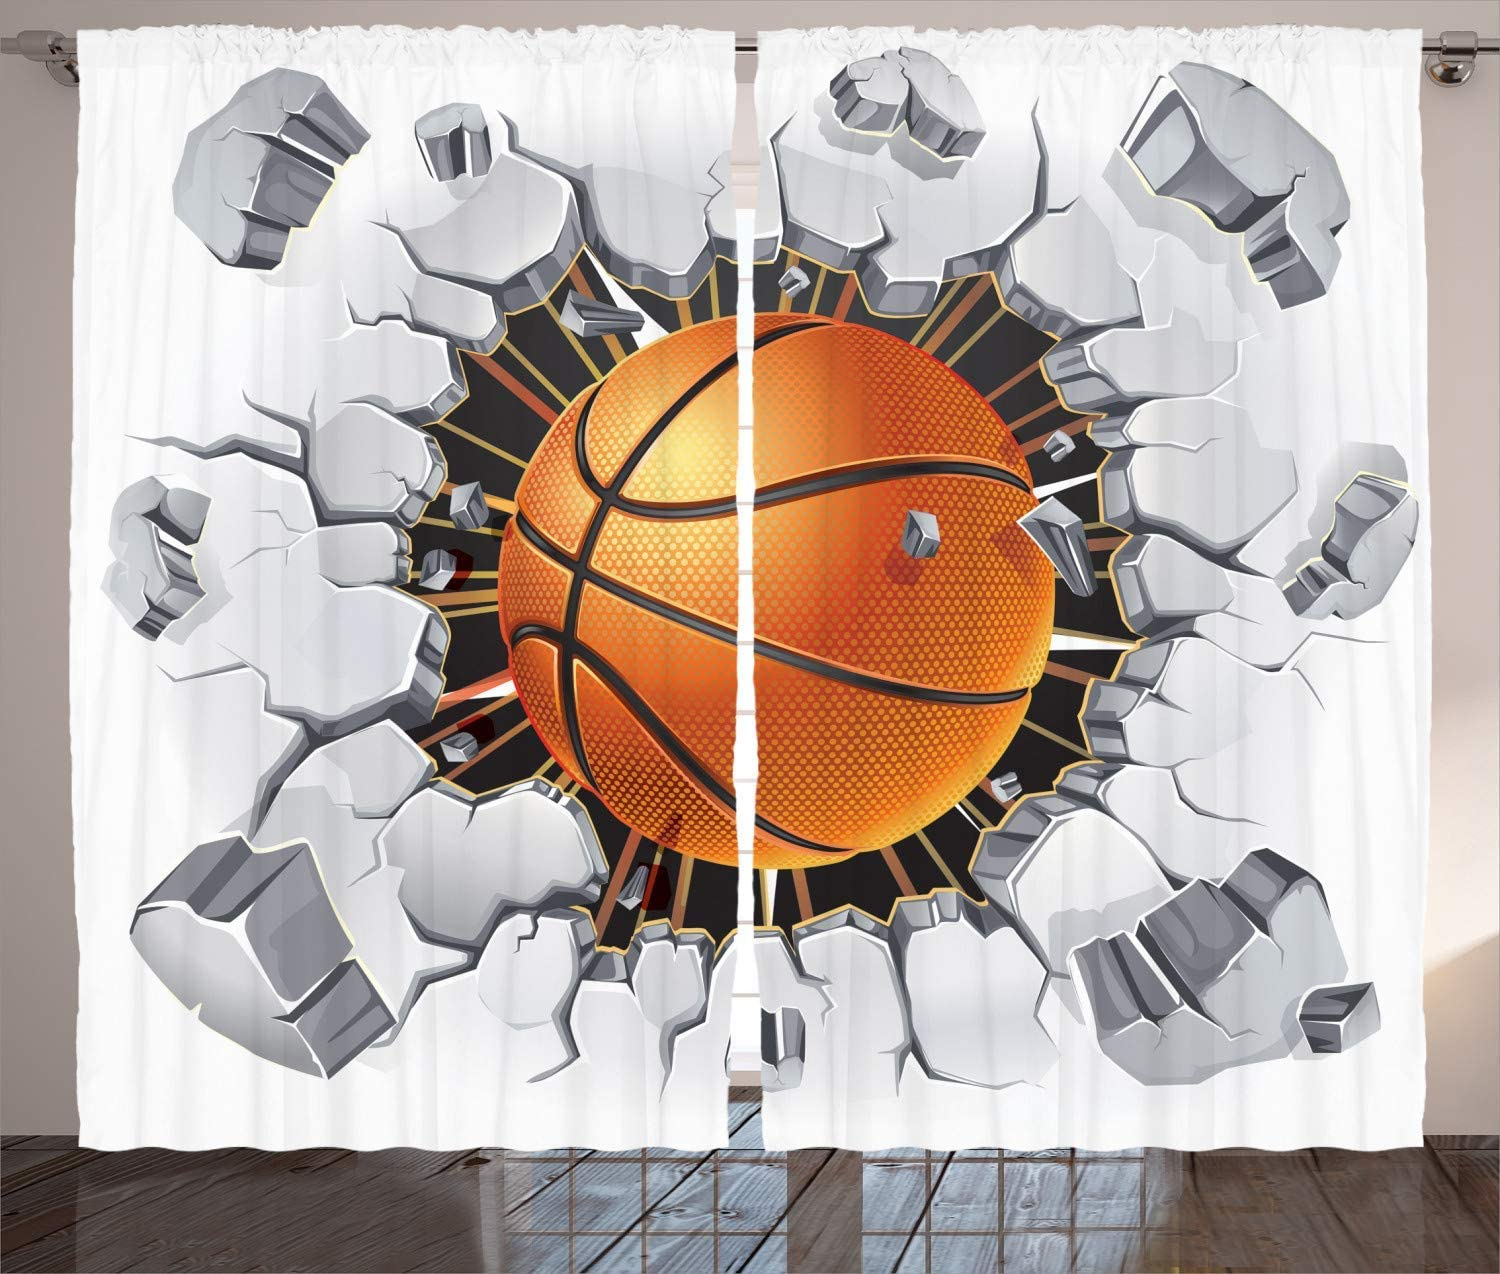 Trust Sports Brand new Curtains Basketball and Old Wall Damage Concrete Plaster